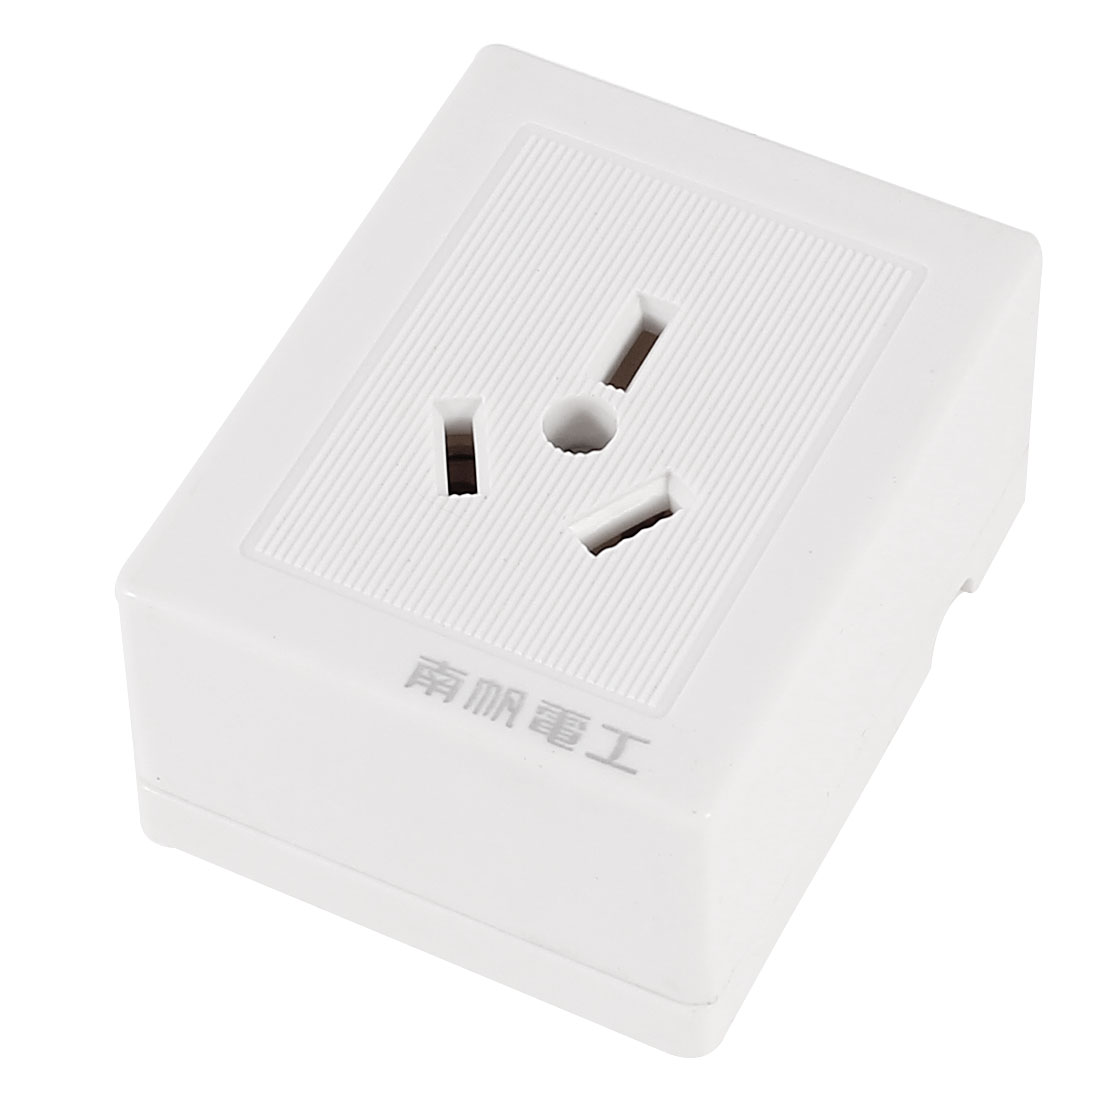 AC 250V 10A AU Socket White Plastic Shell Rectangle Shaped Wall Outlet Plate